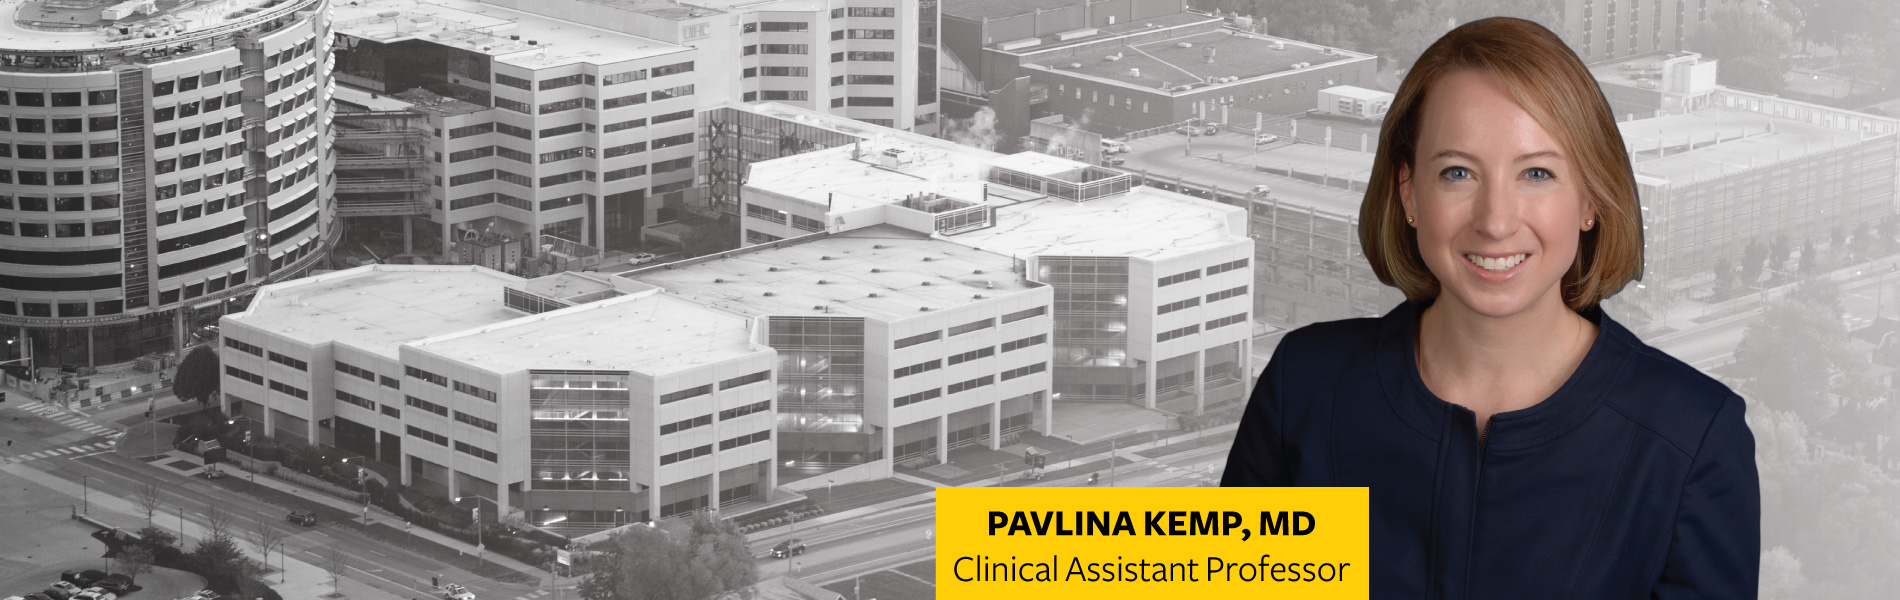 Pavlina Kemp, associate residency program director